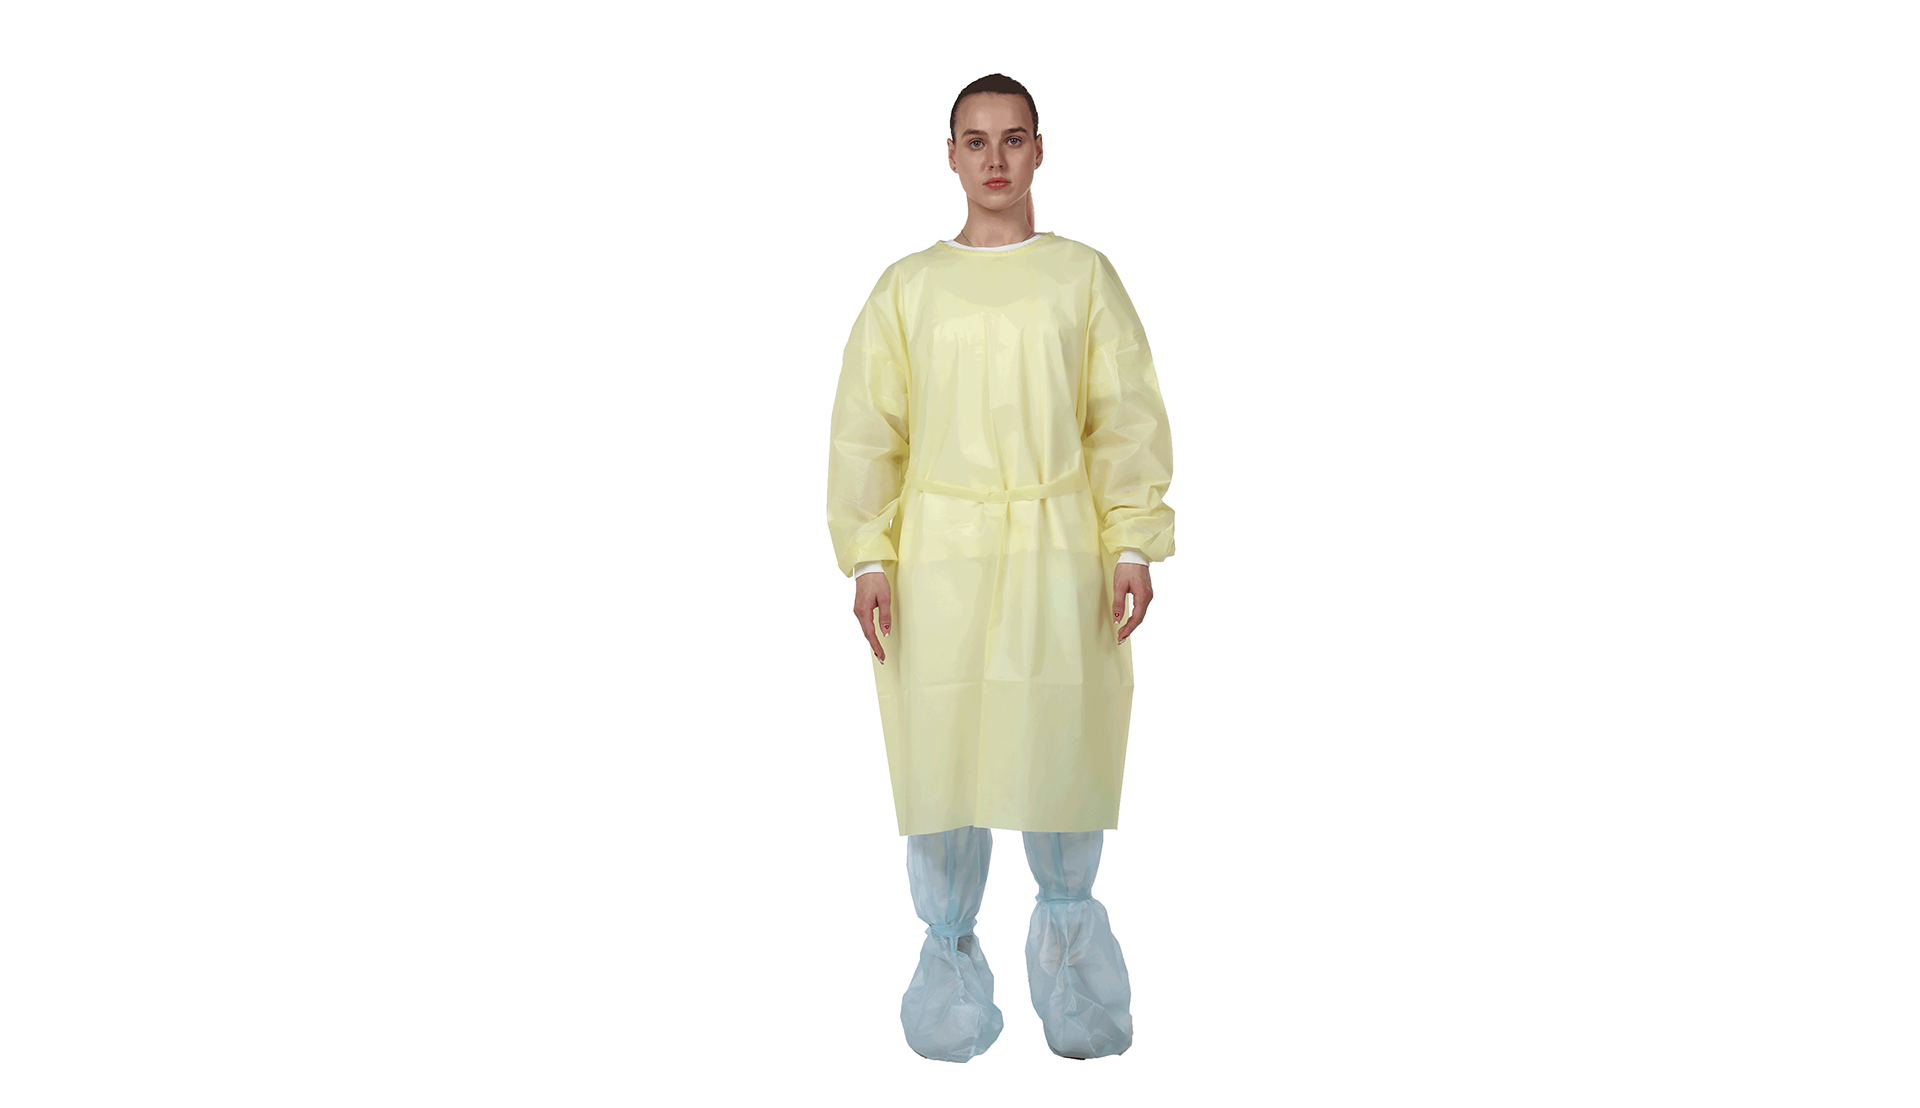 AAMI LEVE2 Isolation Gown